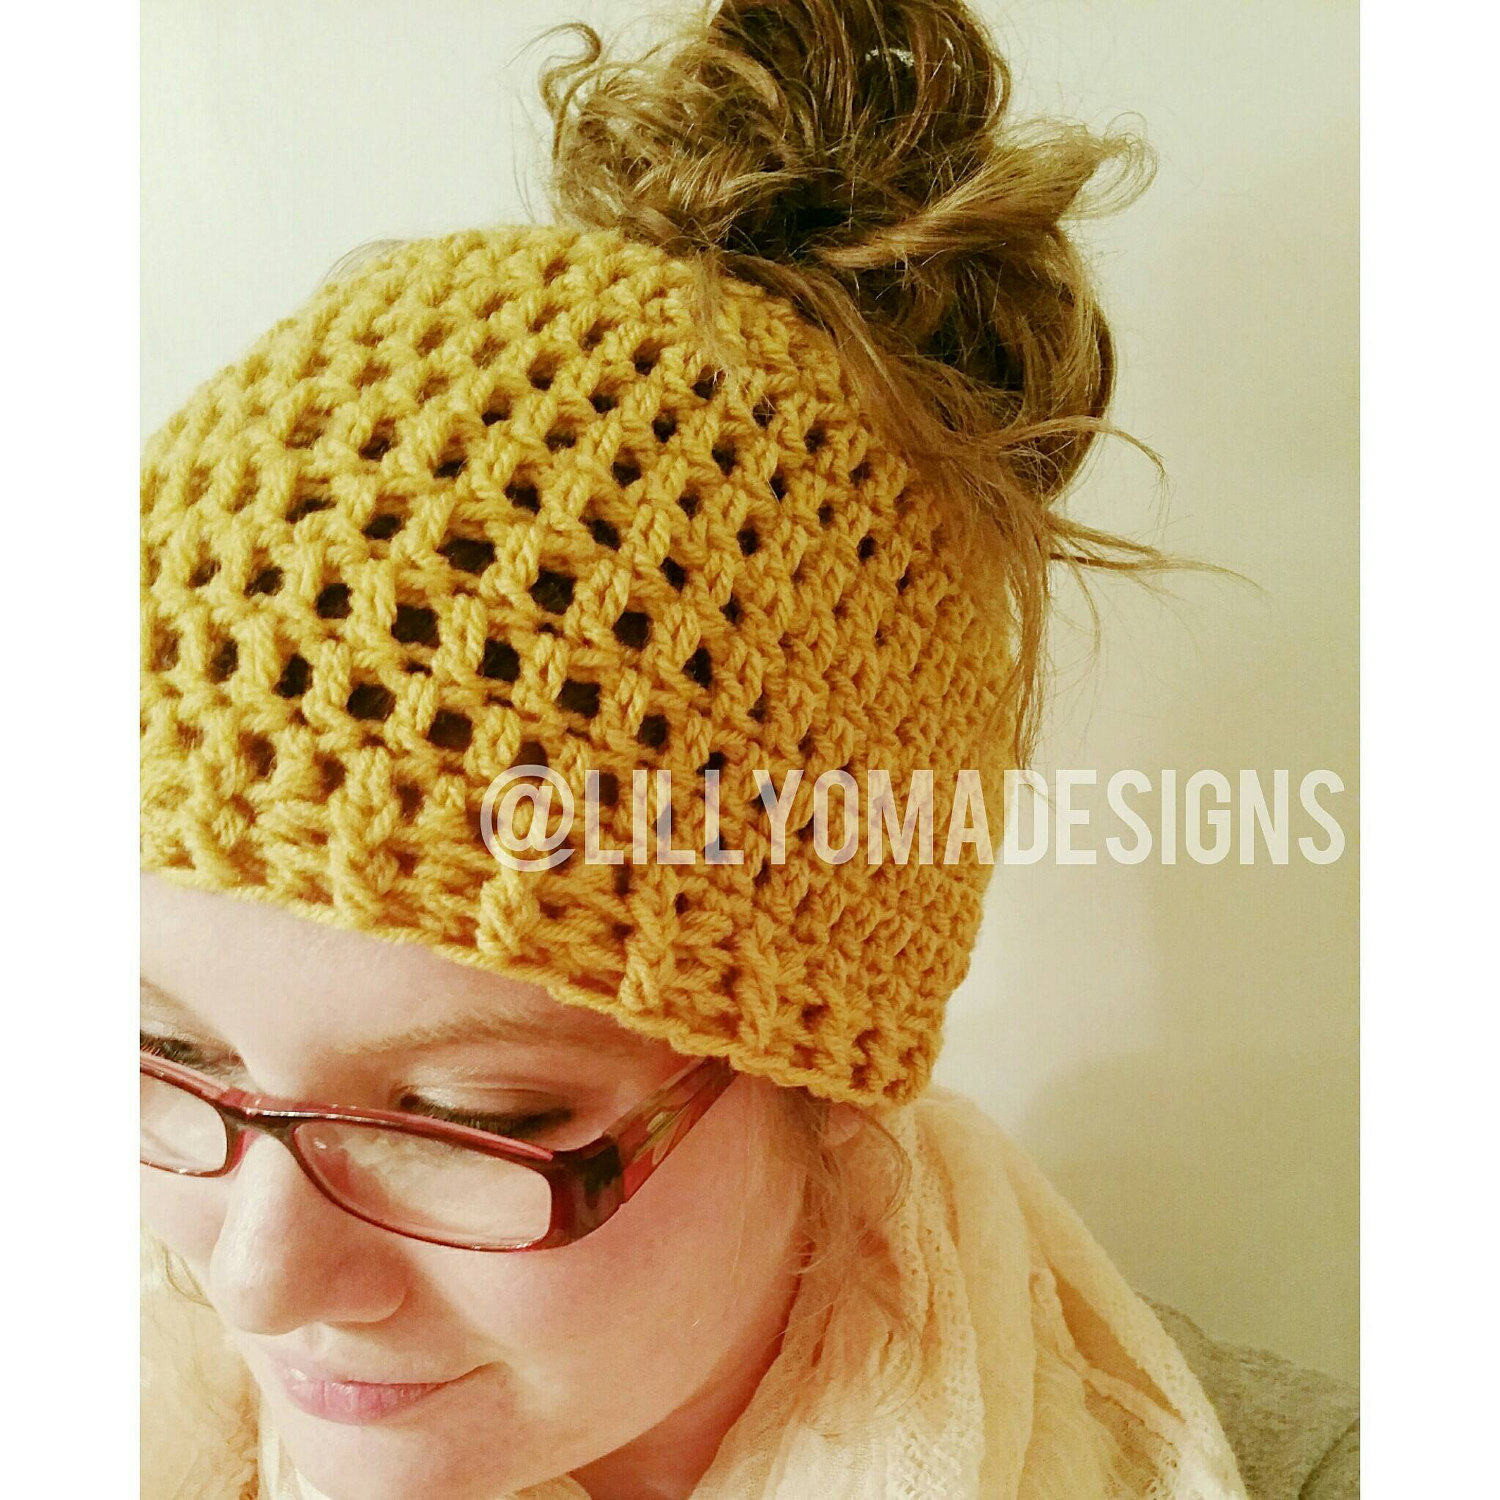 Crochet Messy Bun Beanie Awesome Messy Bun Beanie Ponytail Hat Crochet Bun Hat Of New 43 Photos Crochet Messy Bun Beanie